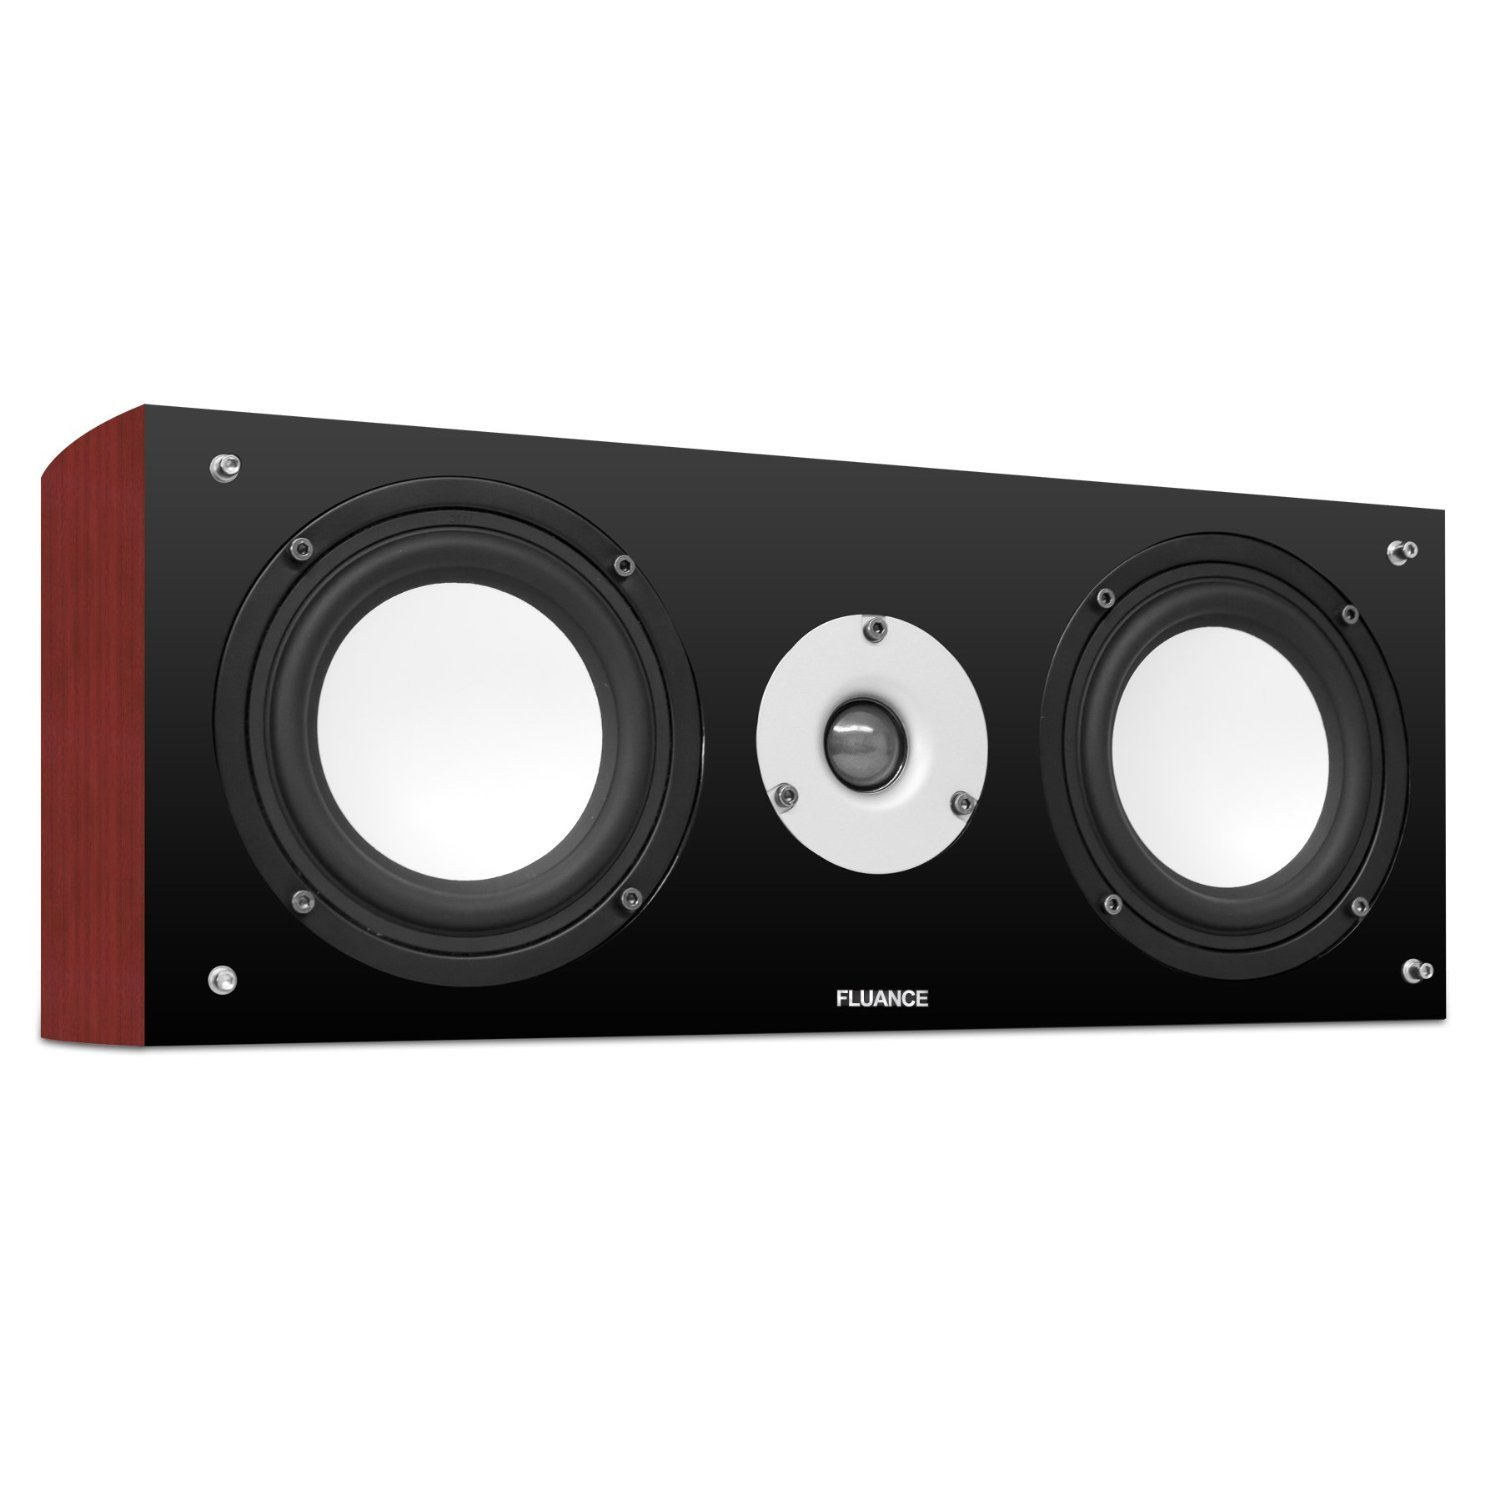 Fluance XL7C High Performance Two-way Center Channel Speaker for Home Theater by Fluance